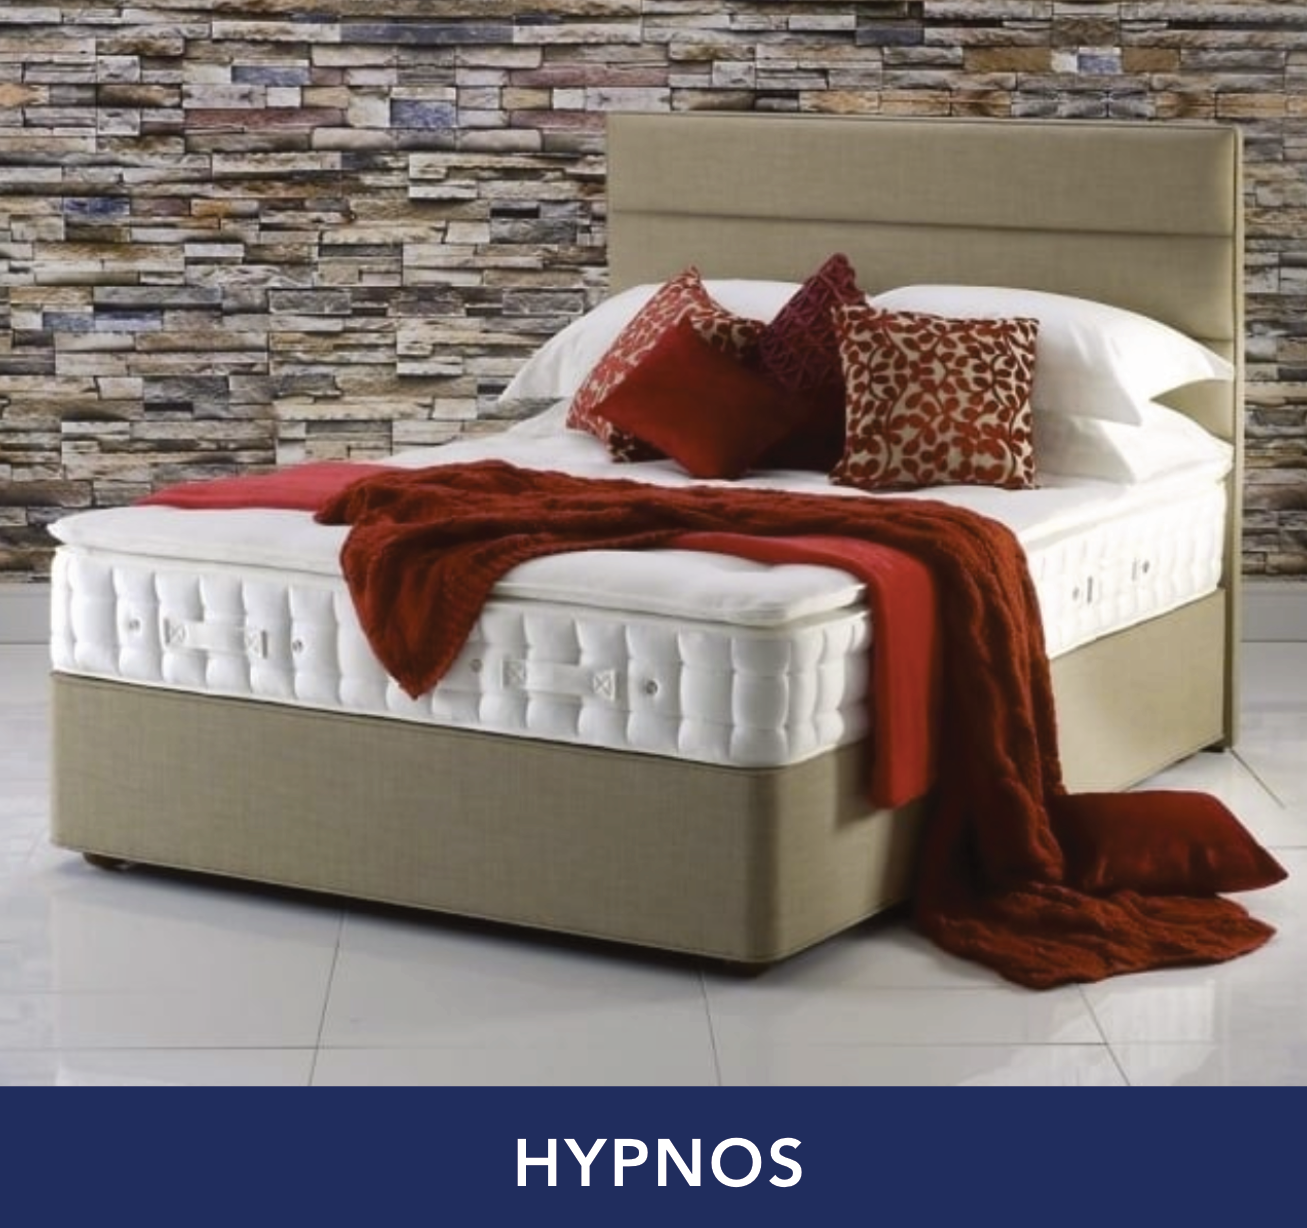 Hypnos Beds Group Page Link